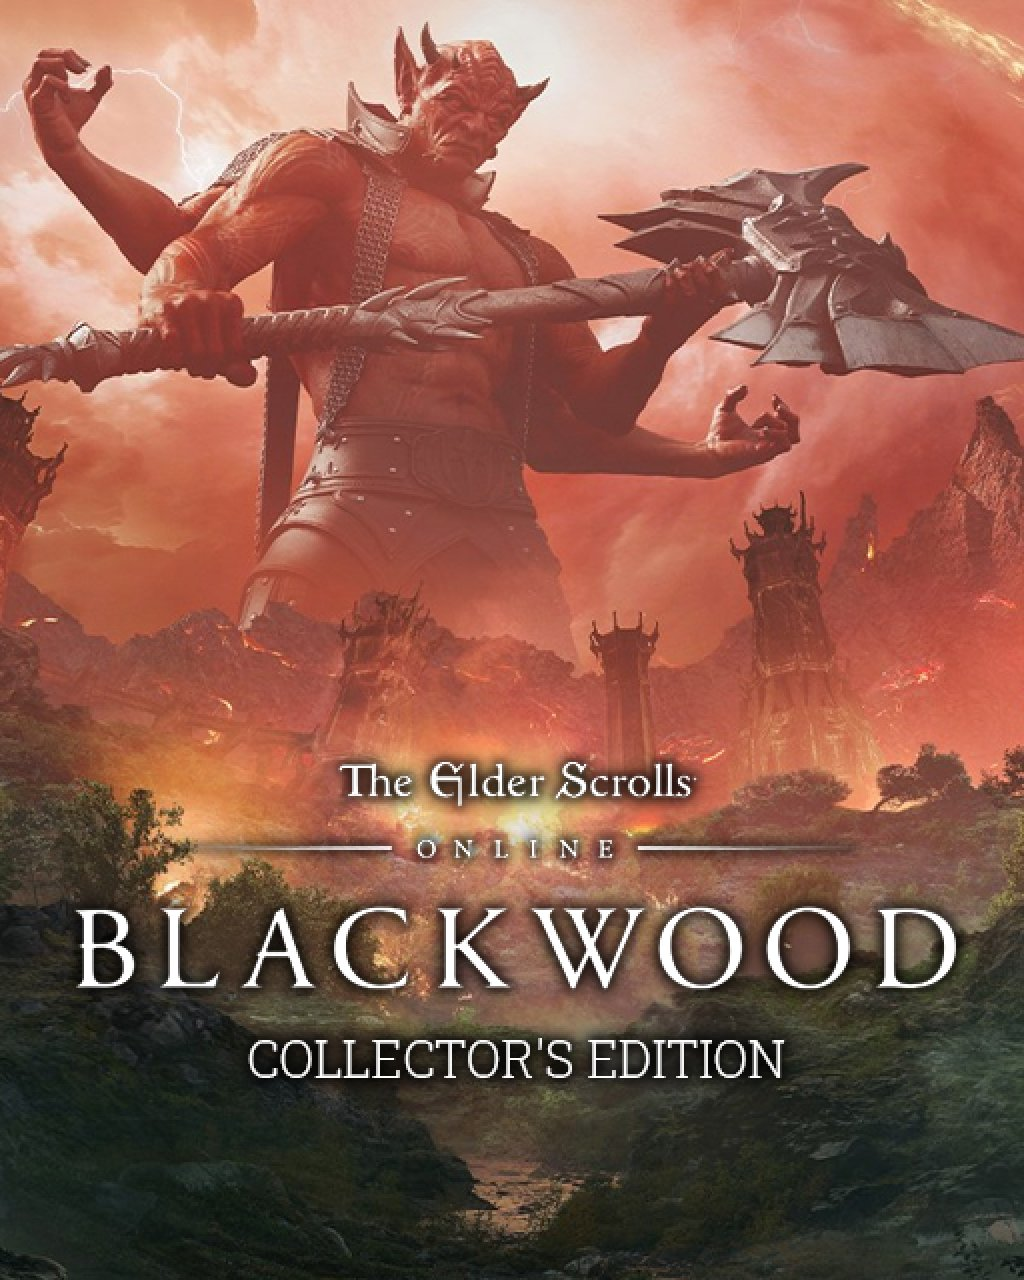 The Elder Scrolls Online Collection Blackwood Collector's Edition